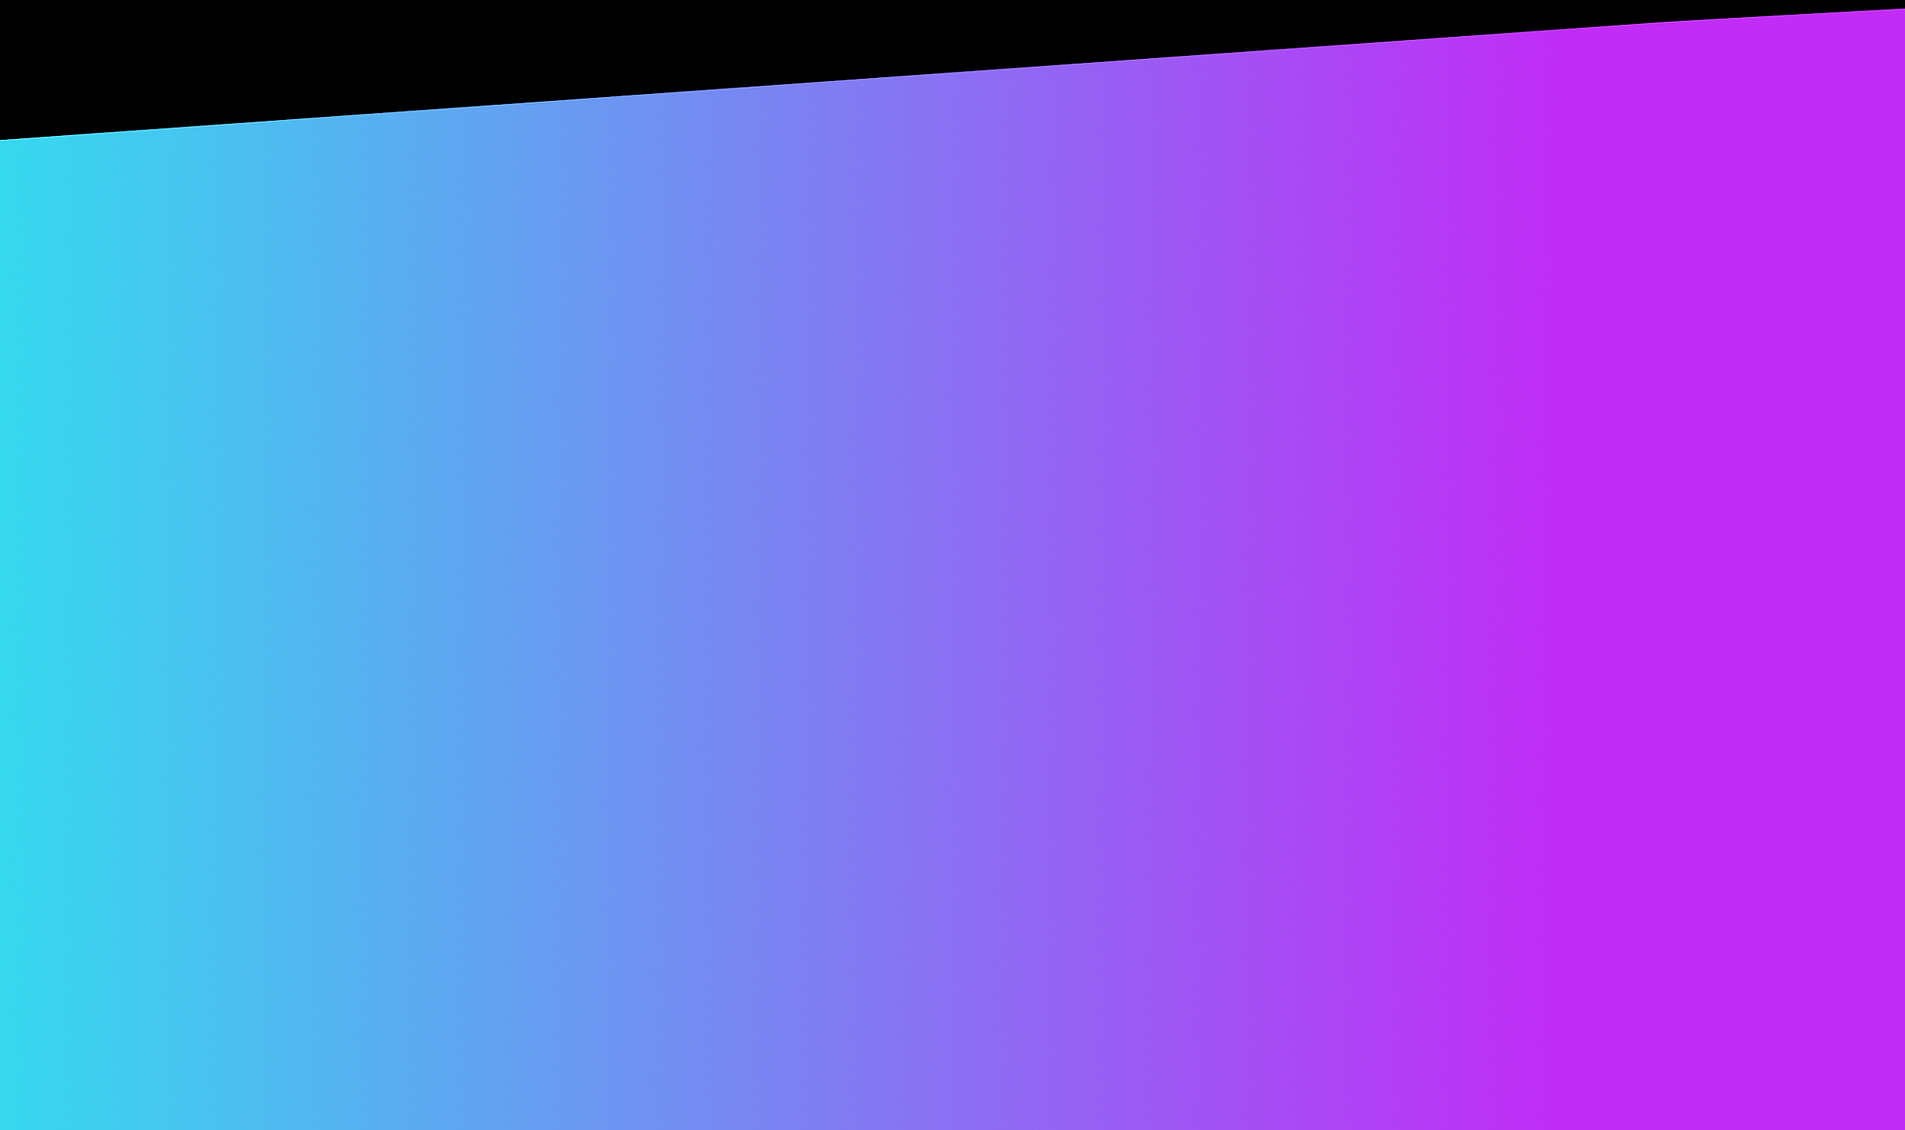 bg black and gradient before footer.png